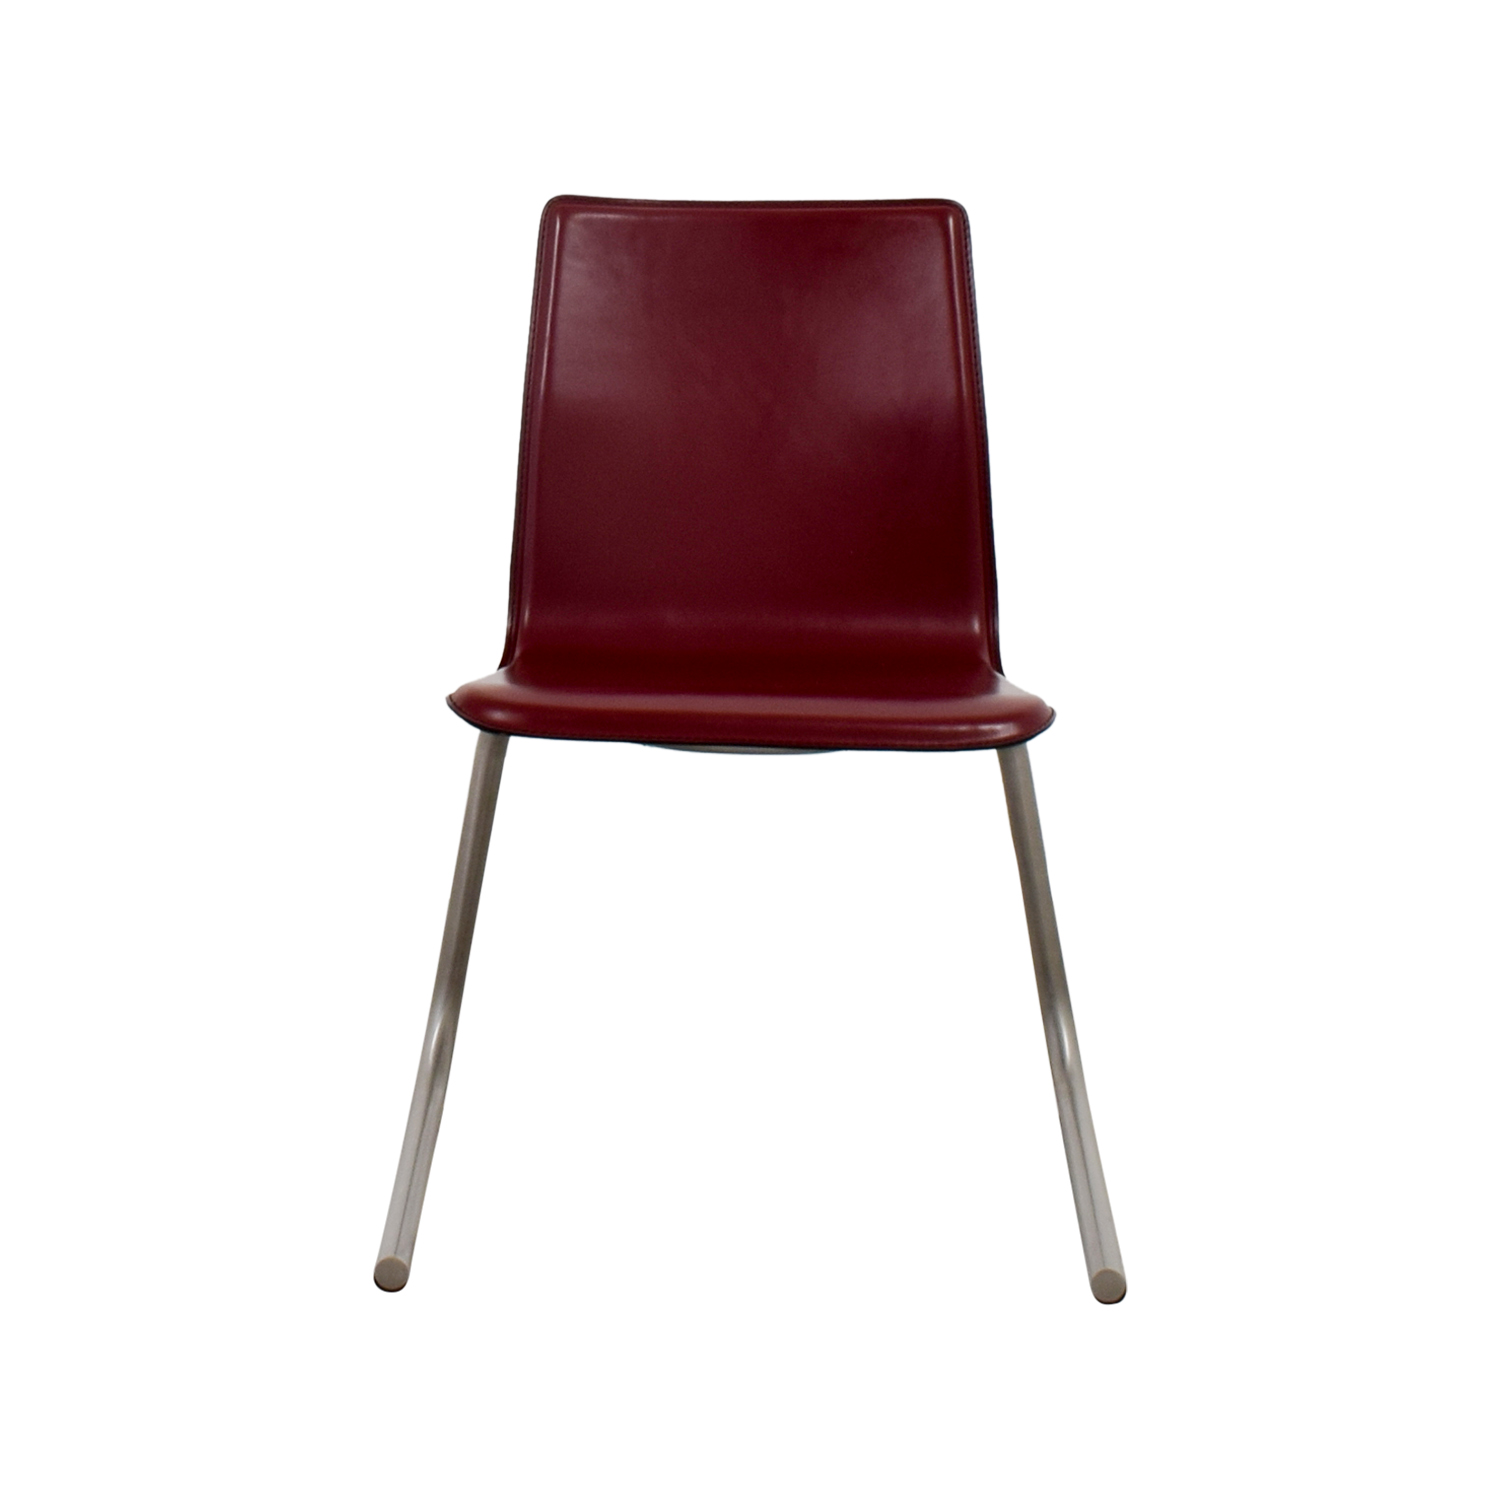 buy Frighetto Industries Frighetto Industries Modern Red Faux Leather Chair online